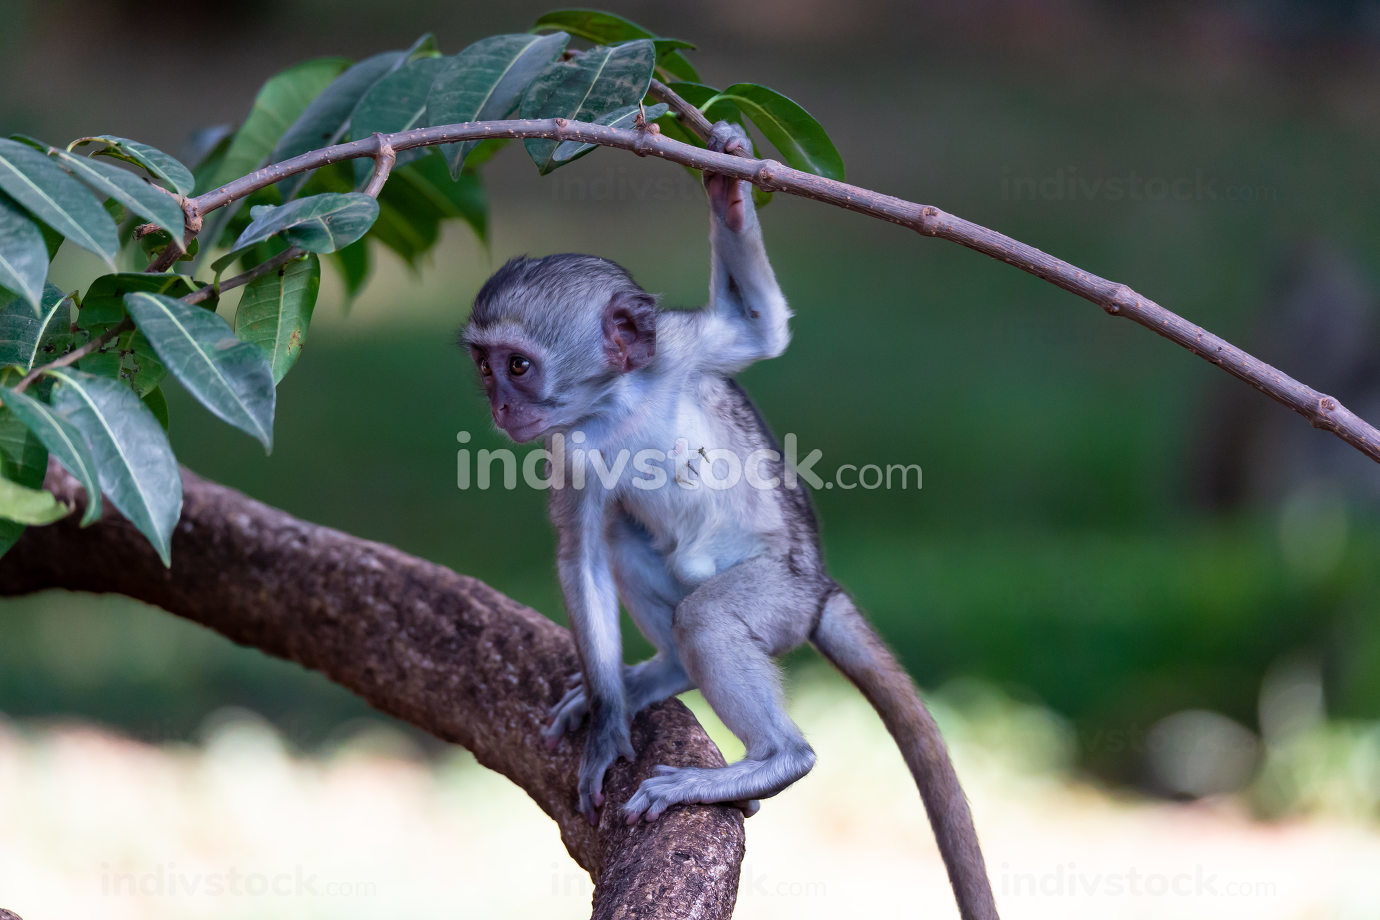 A monkey climbs around on a branch